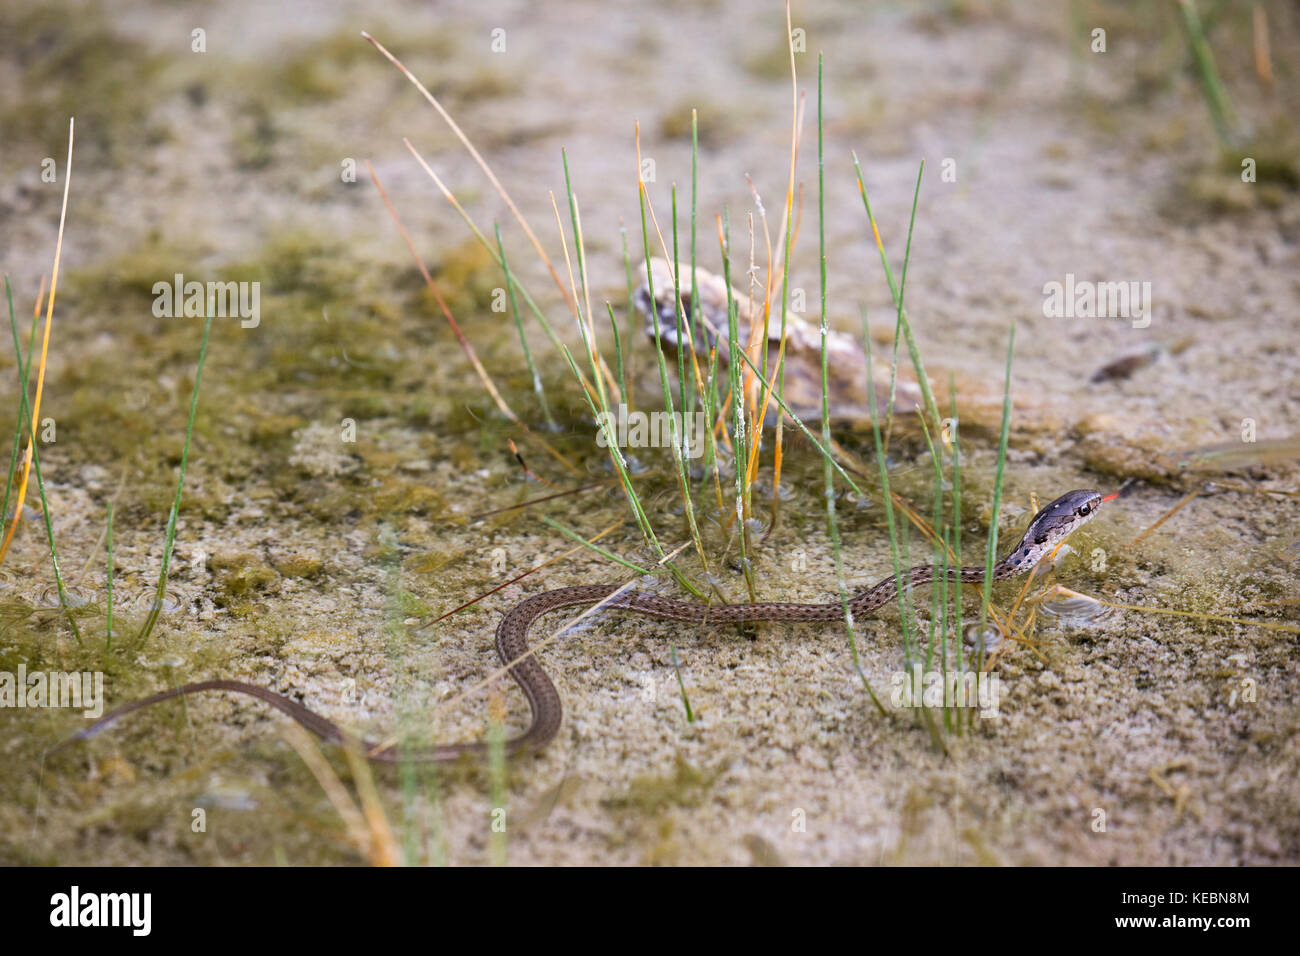 Western Terrestrial Garter Snake (Thamnophis elegans) swimming in hot spring on Sulphur Mountain Stock Photo